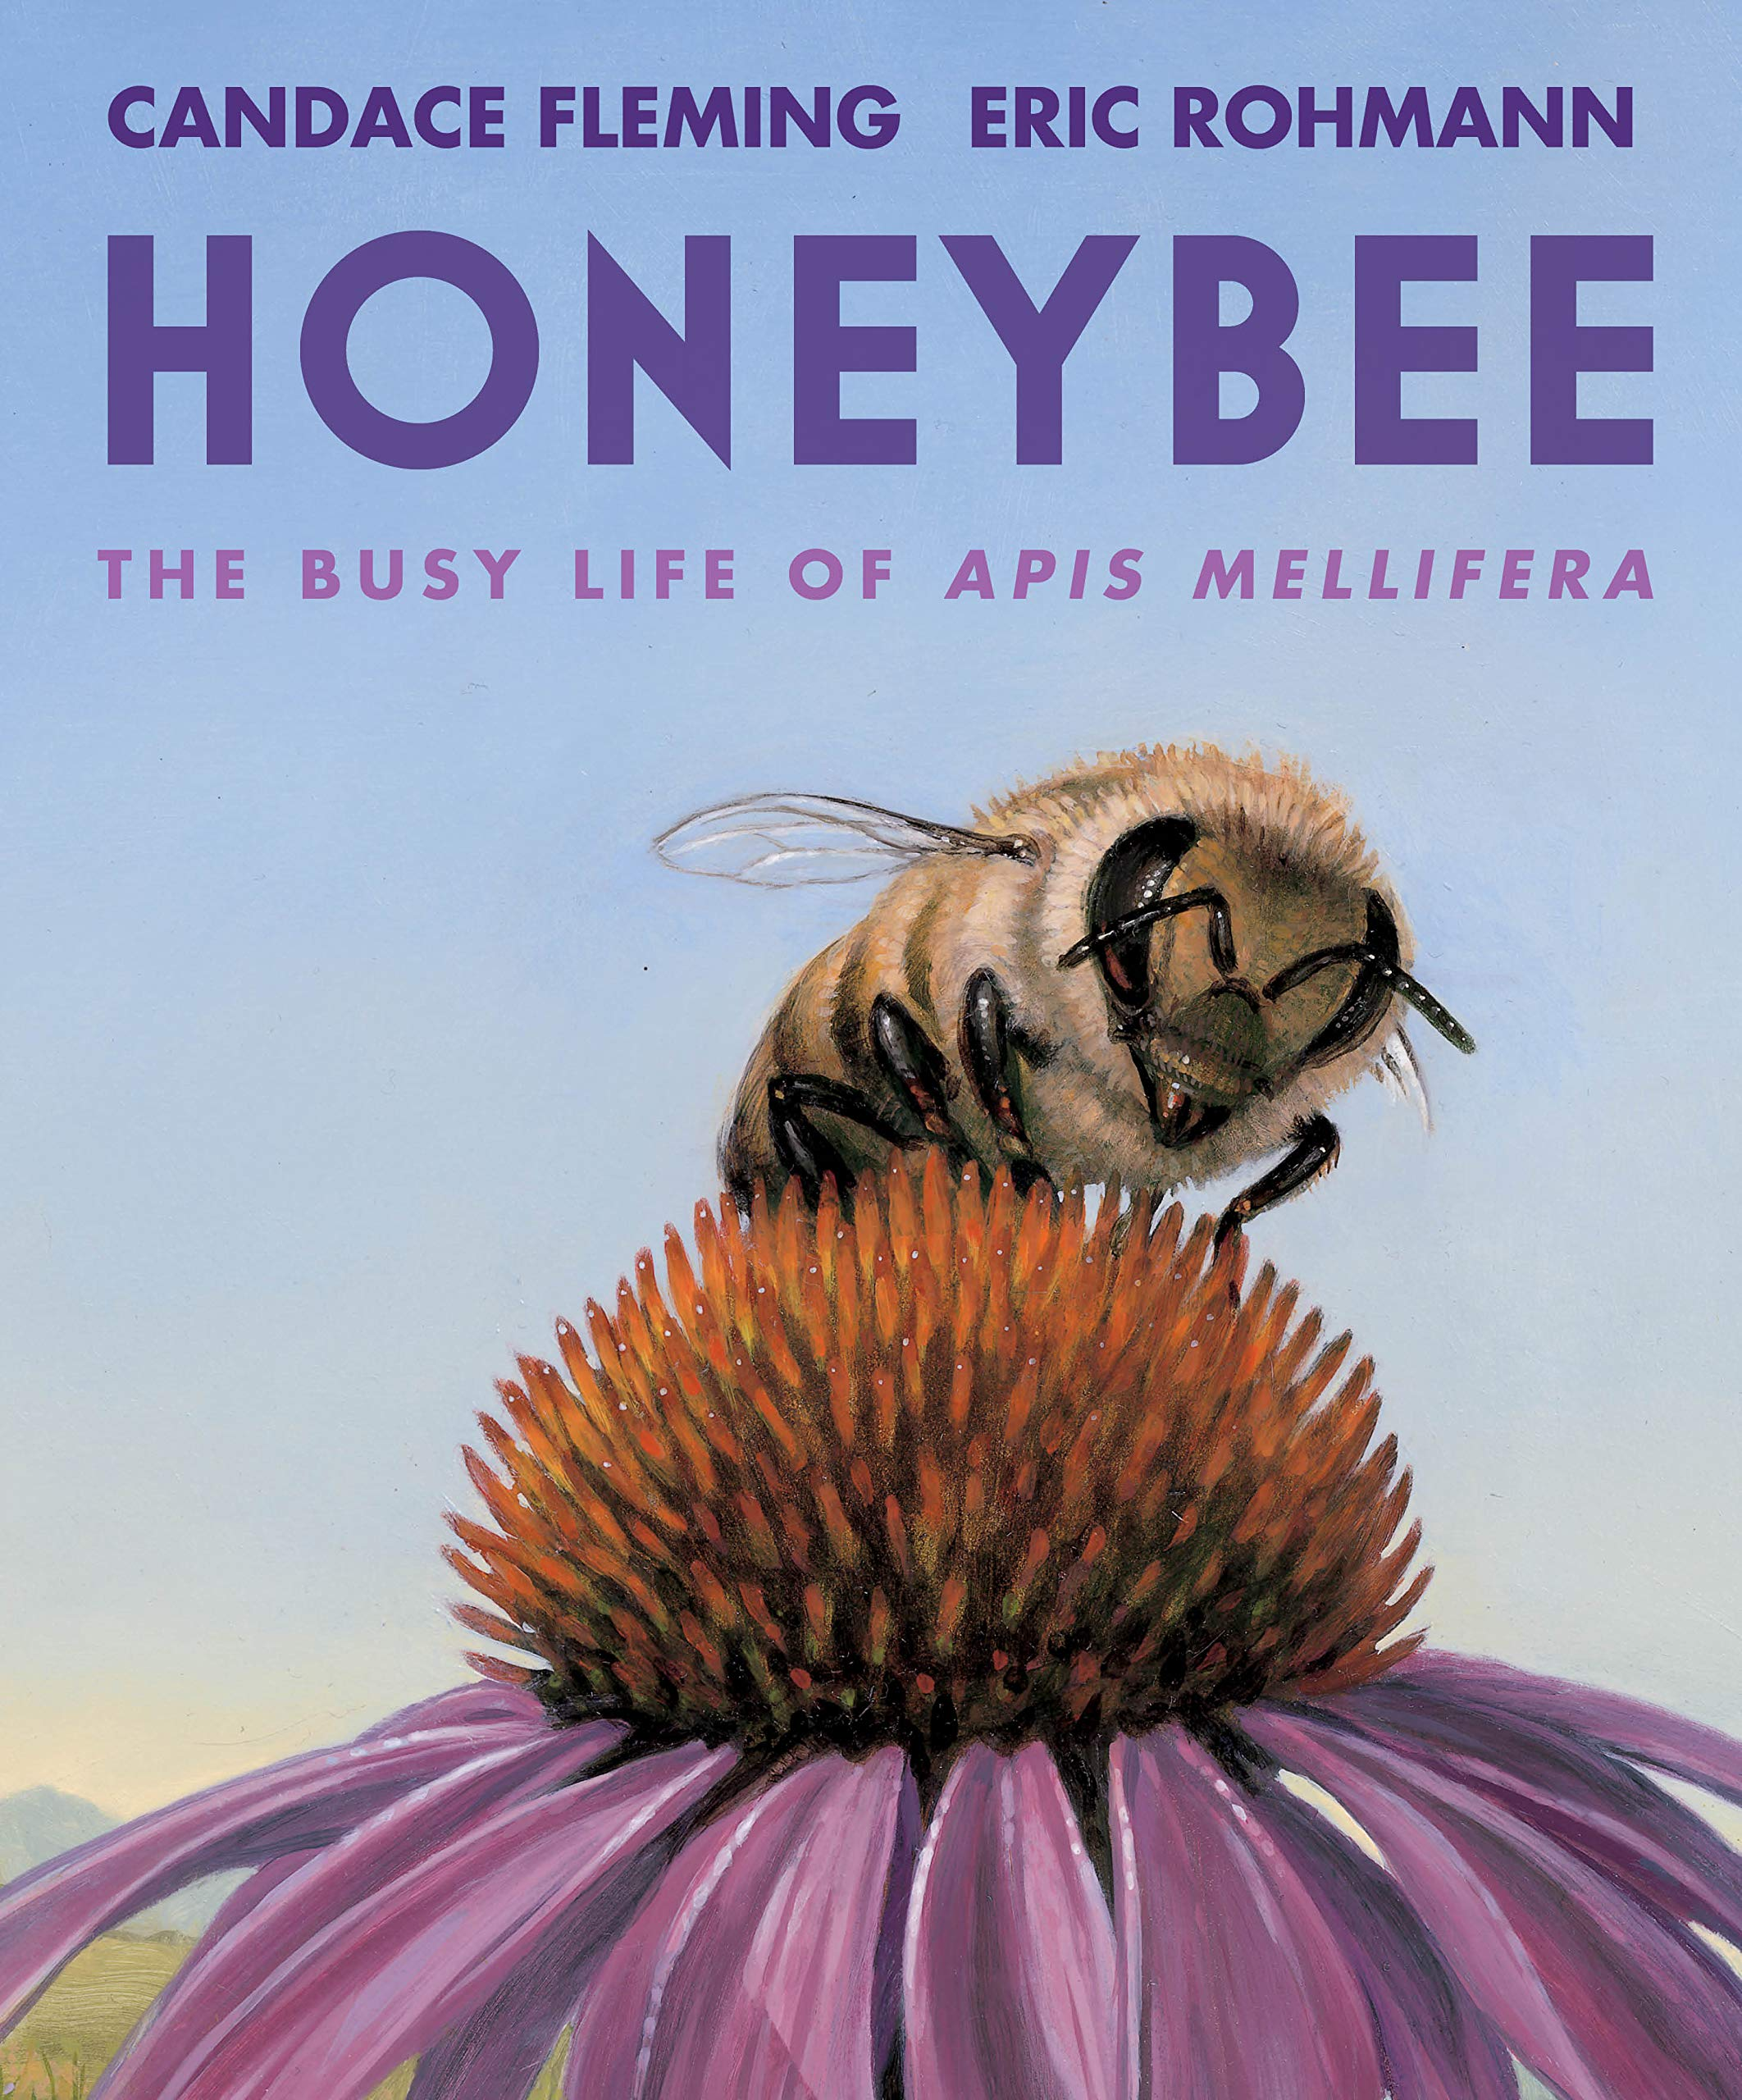 Honeybee: The Busy Life of Apis Mellifera: Fleming, Candace, Rohmann, Eric:  9780823442850: Amazon.com: Books